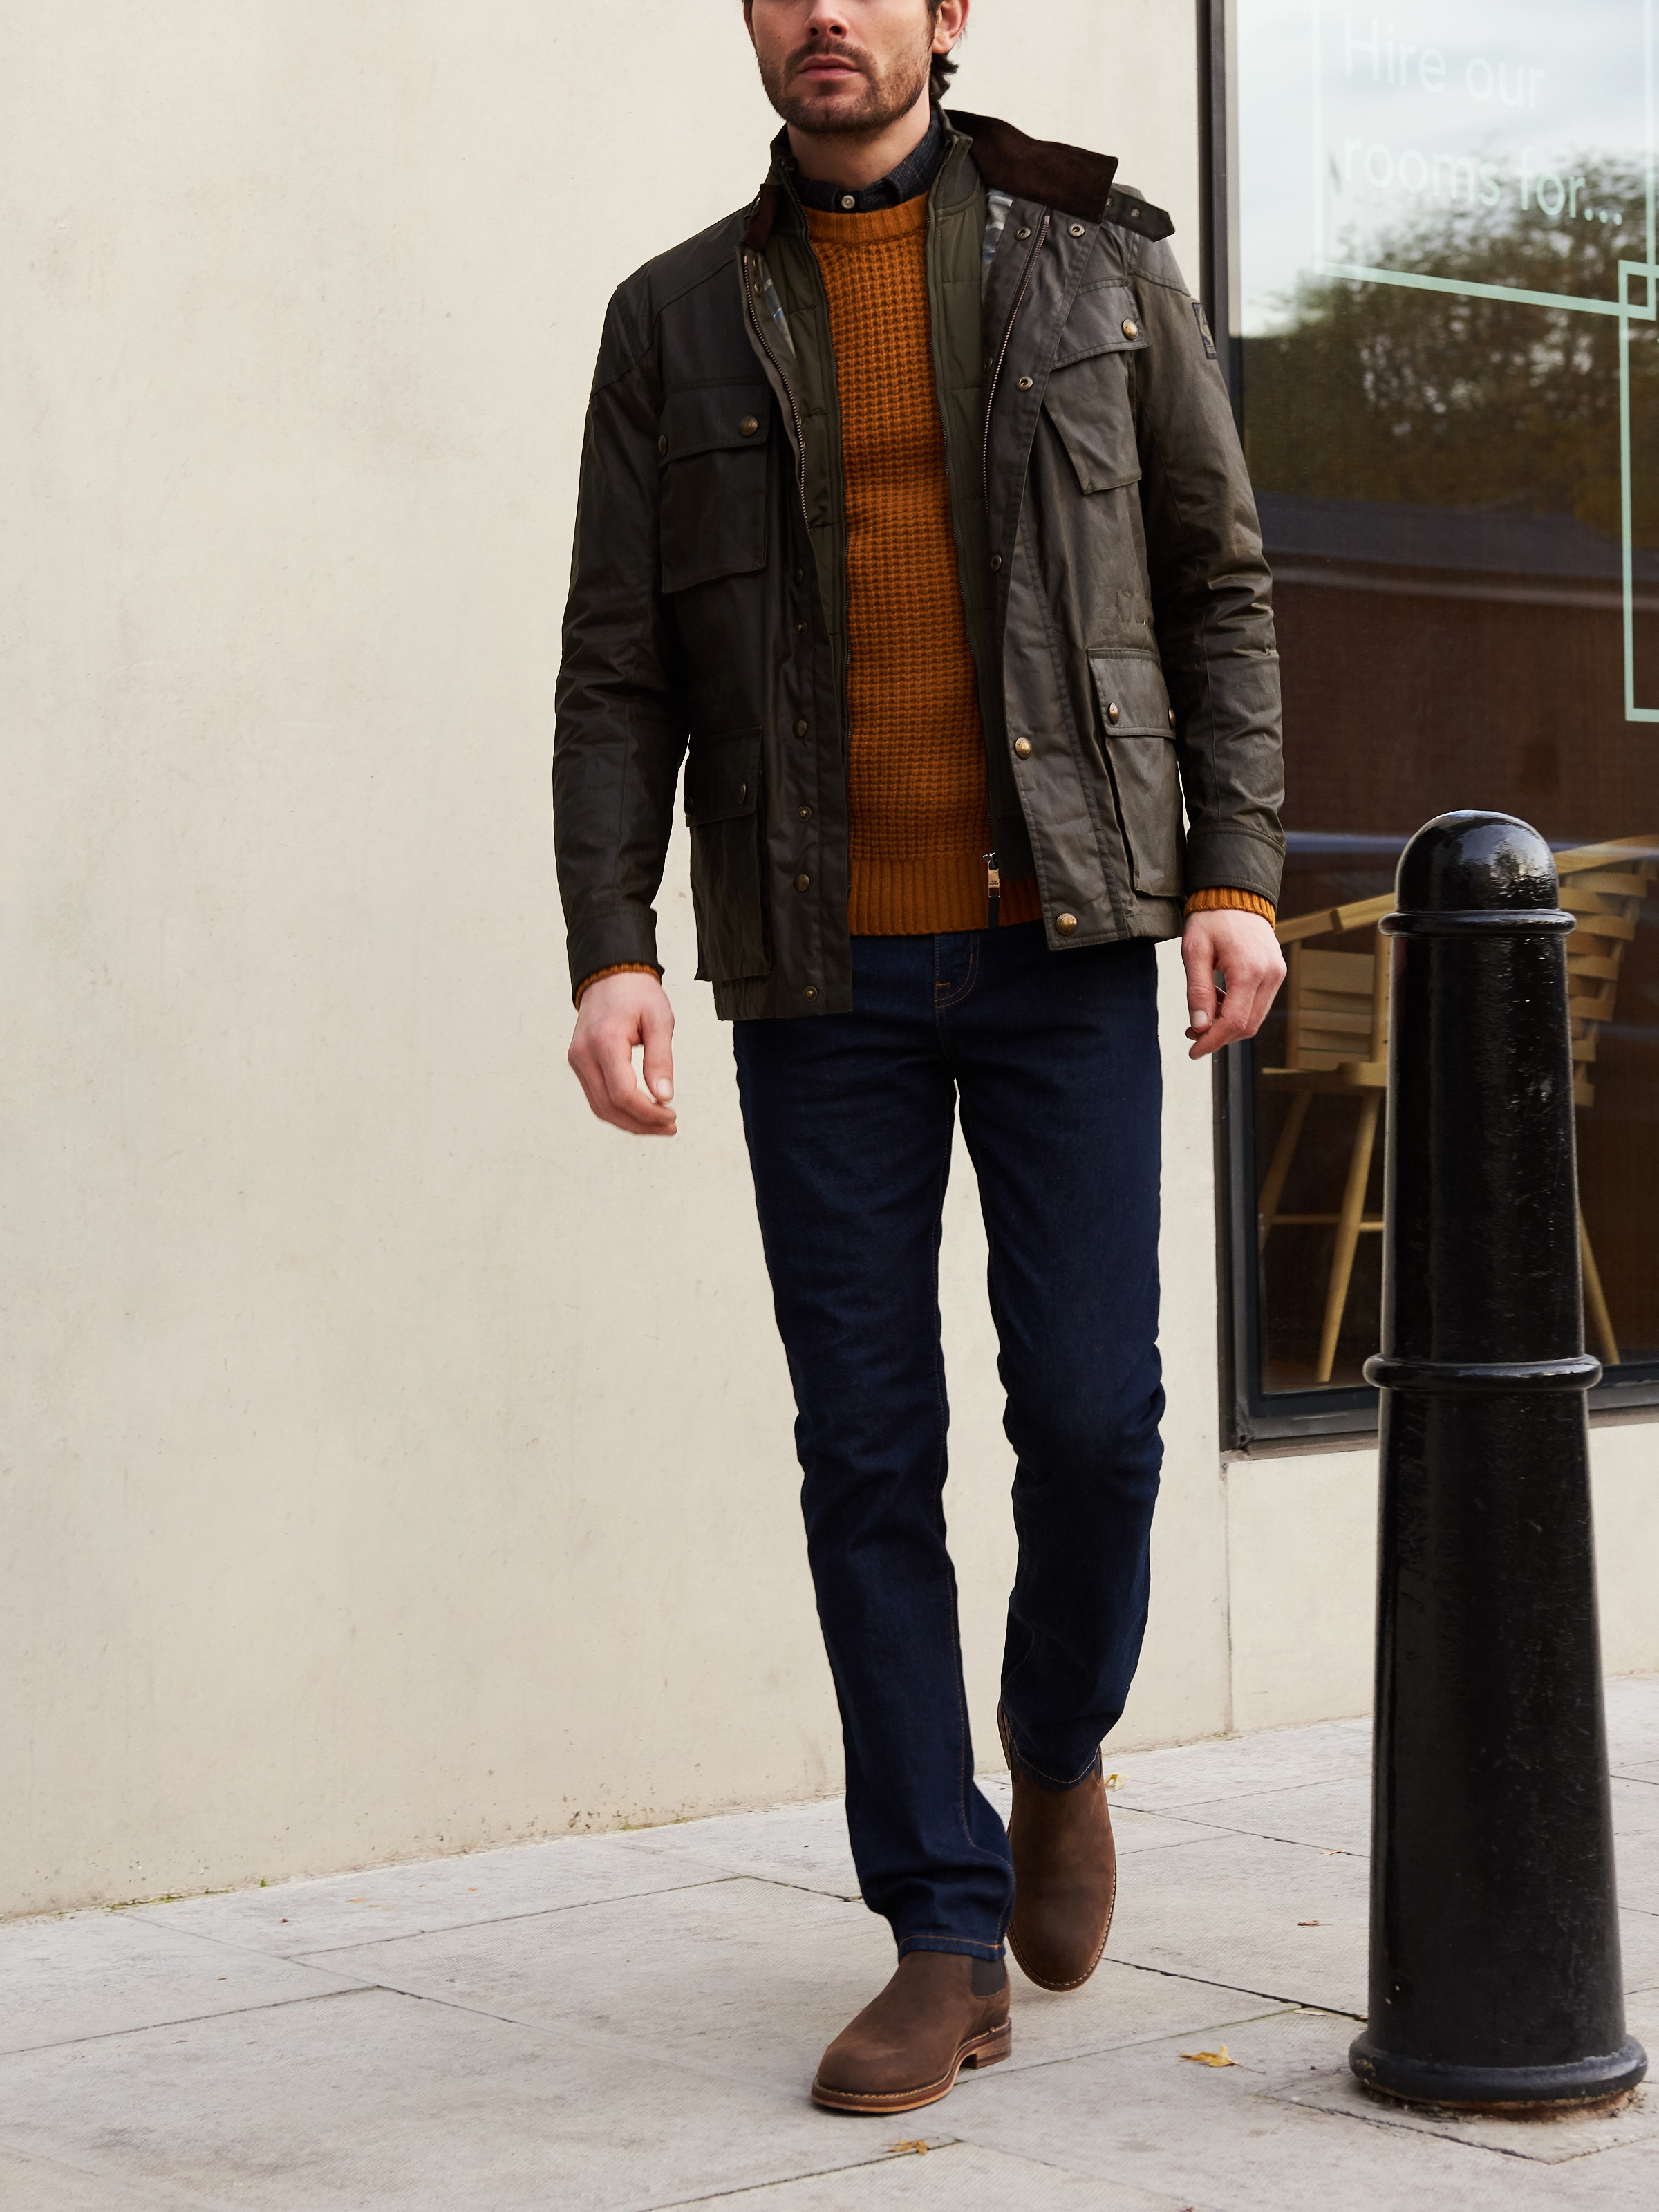 Men's outfit idea for 2021 with field jacket, bold-colored crew neck sweater, neutral plaid shirt, dark blue jeans, brown chelsea boots. Suitable for fall and winter.